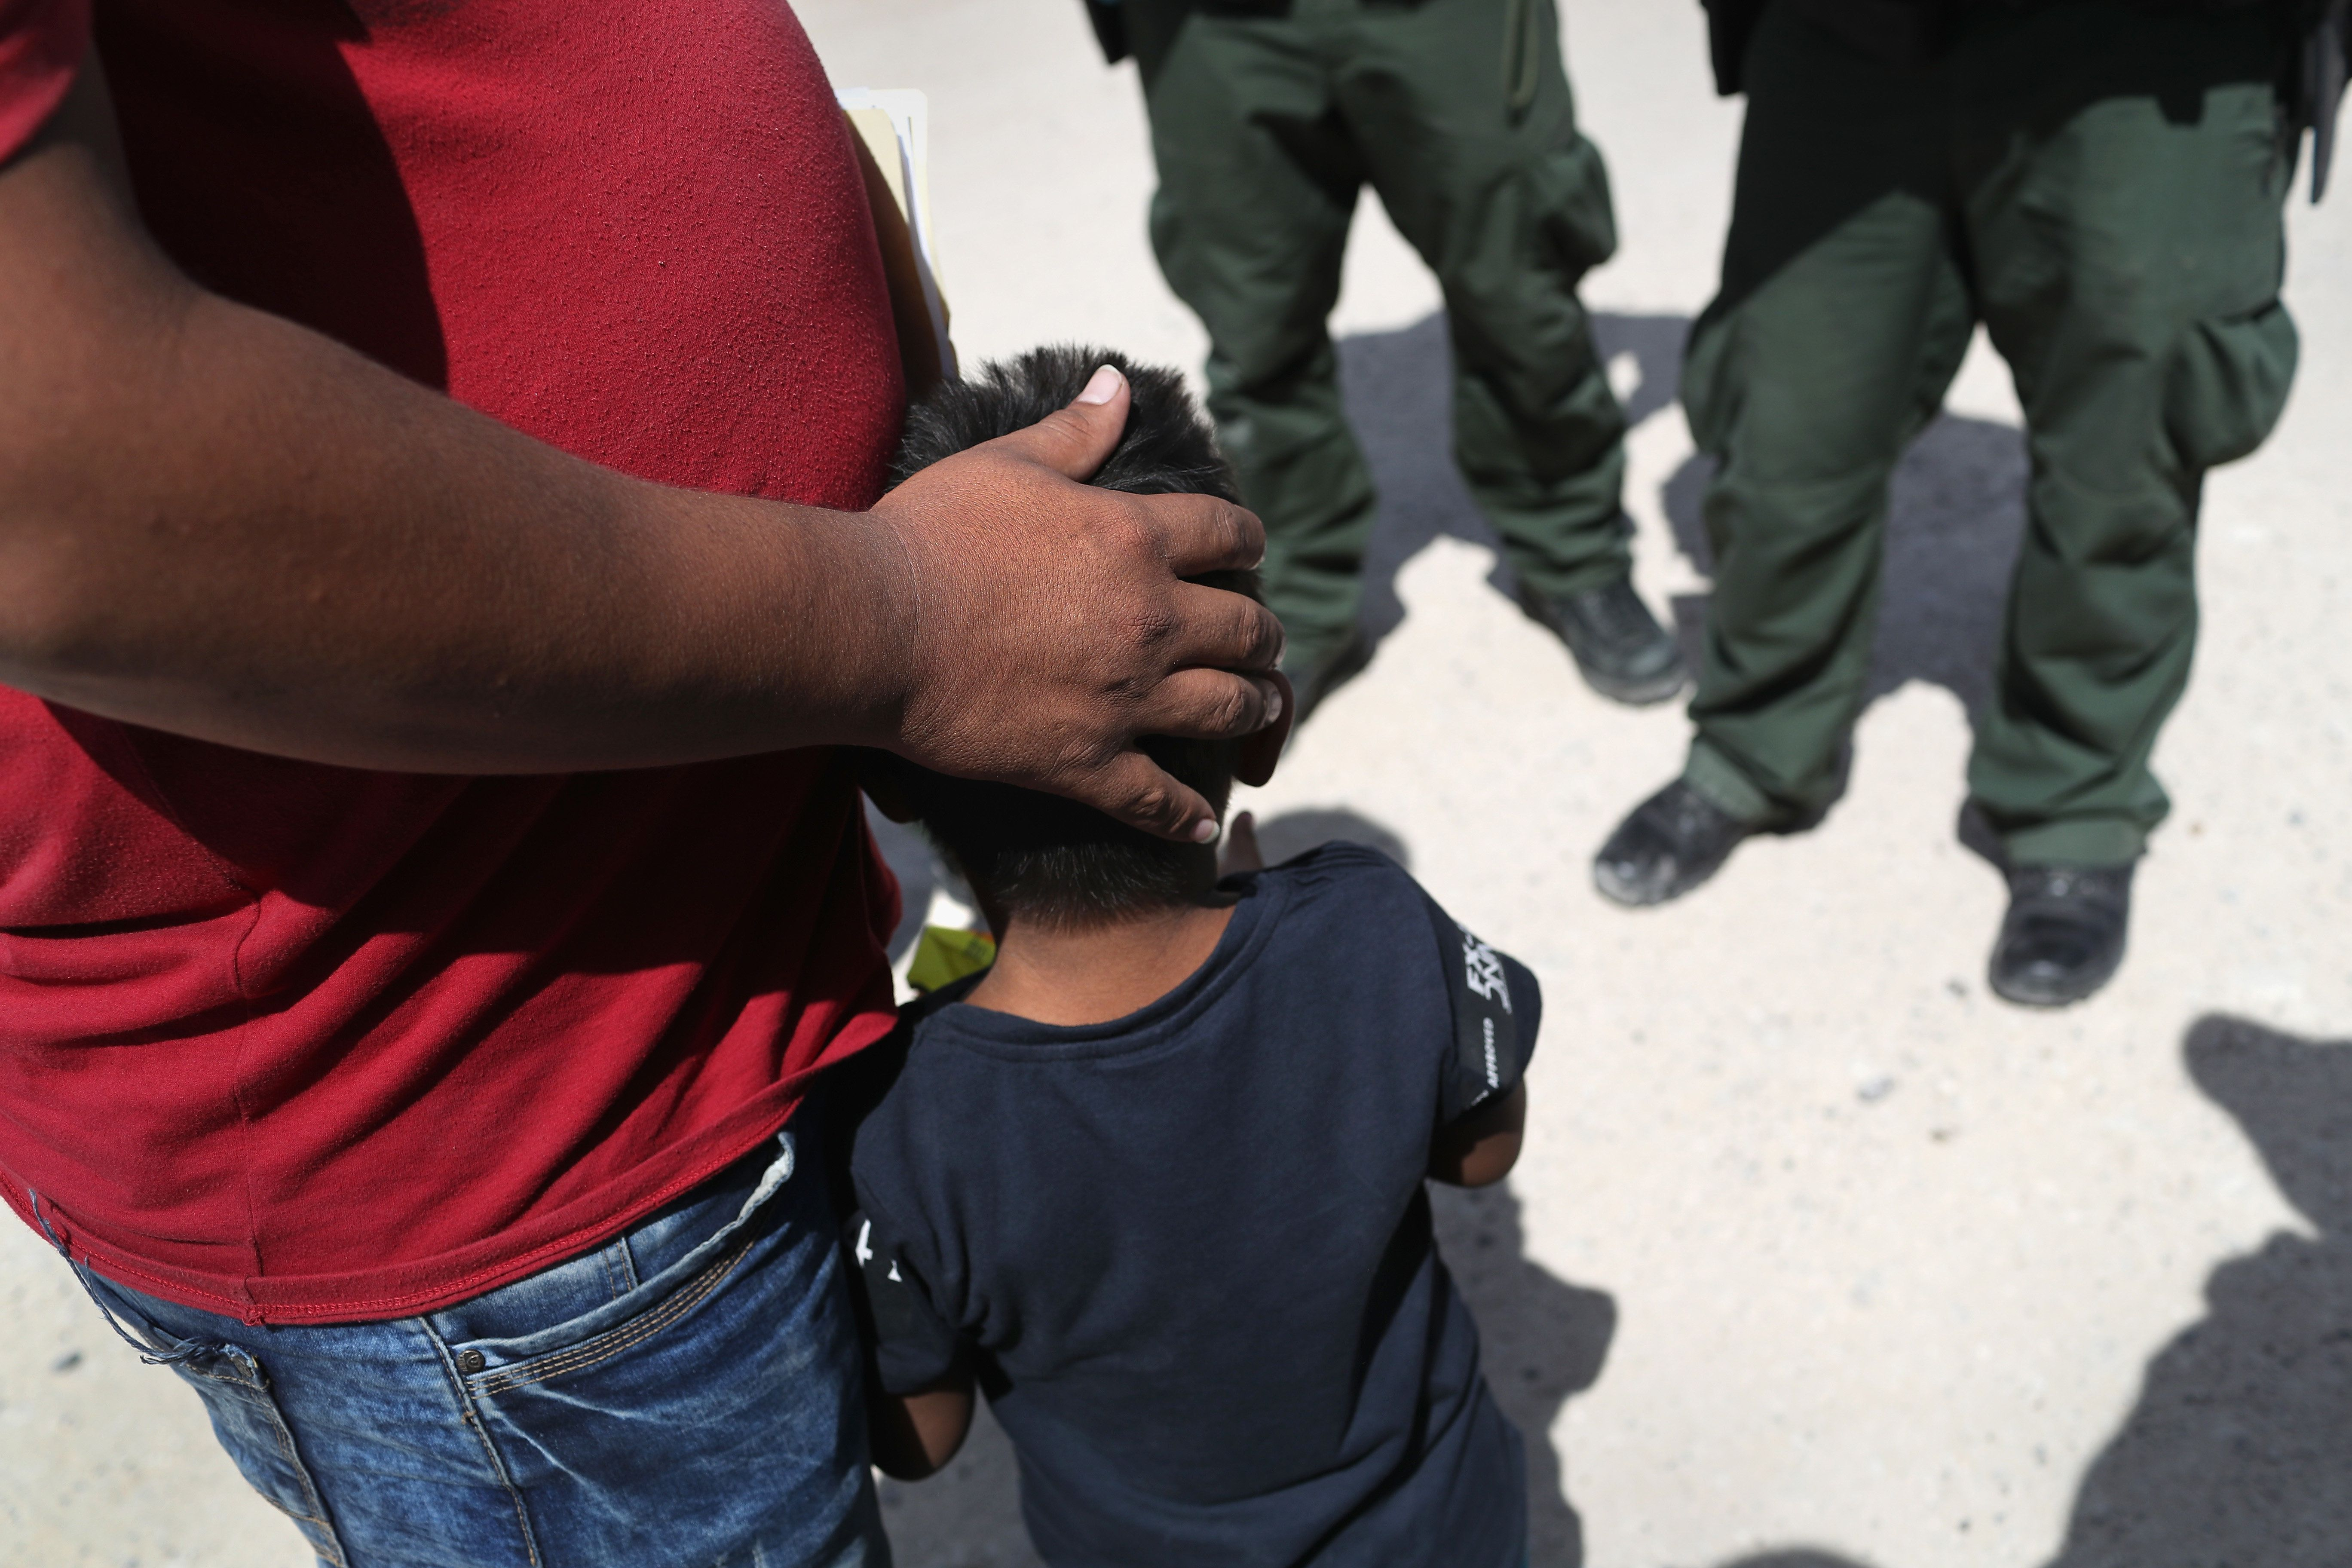 Figures show about 2,000 minors separated from families at U.S. border